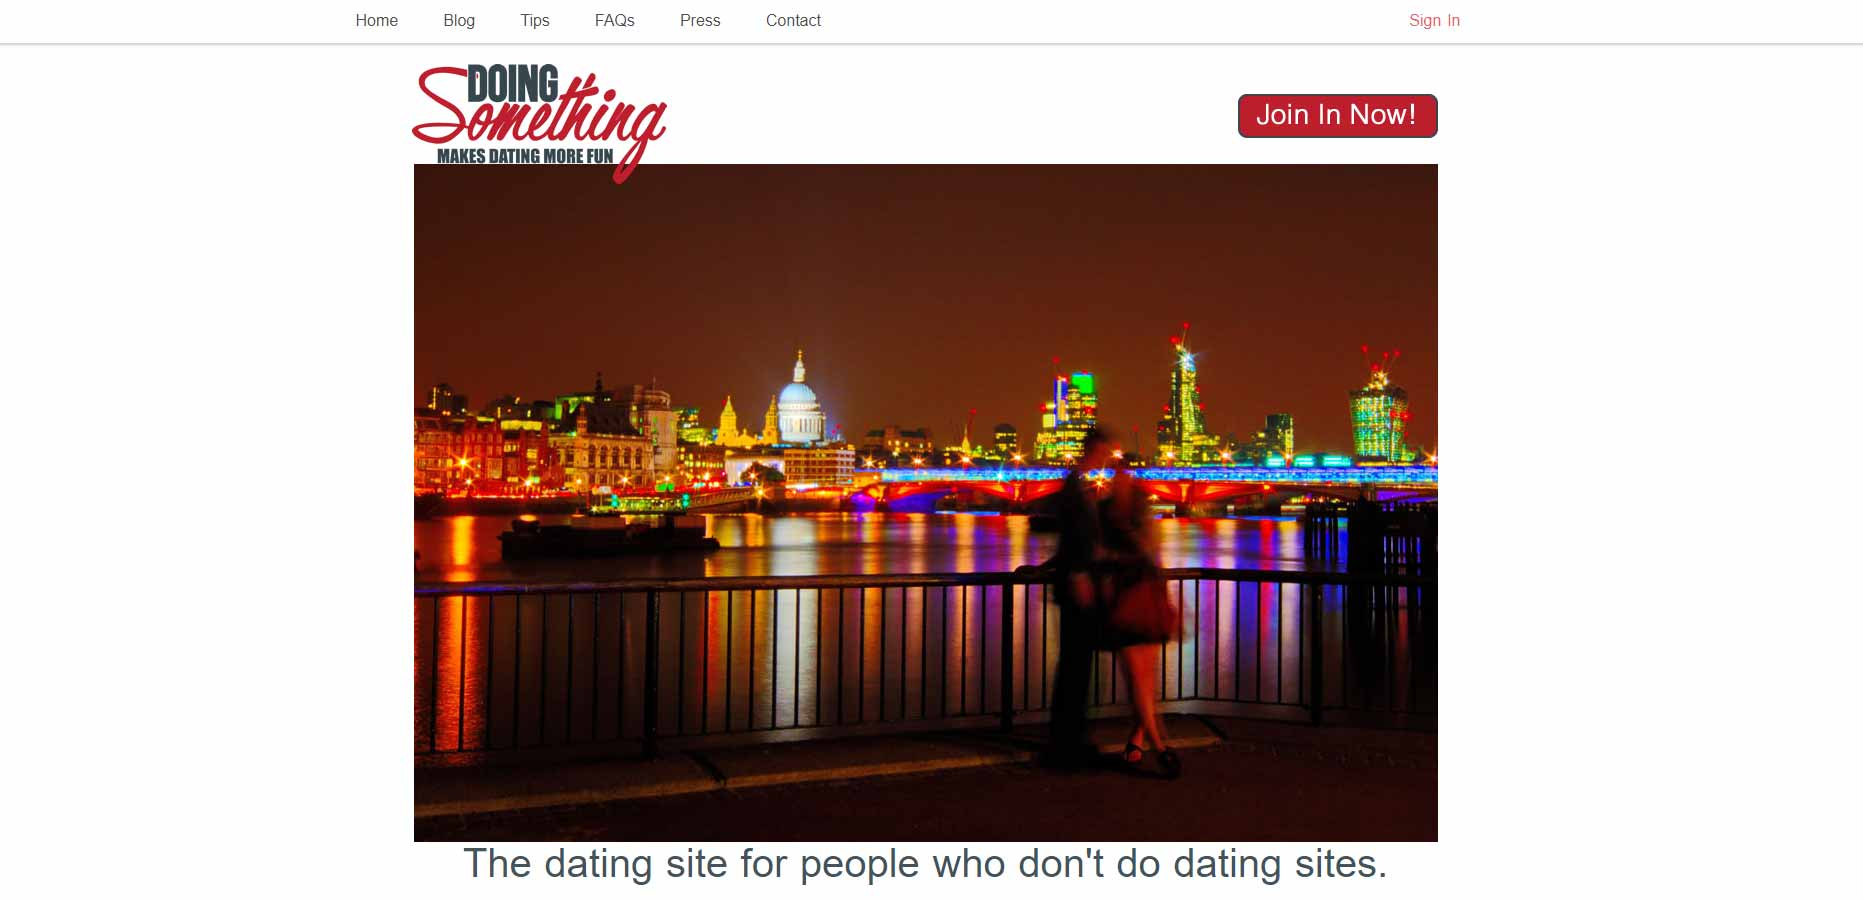 Doing Something home page image for international dating site review